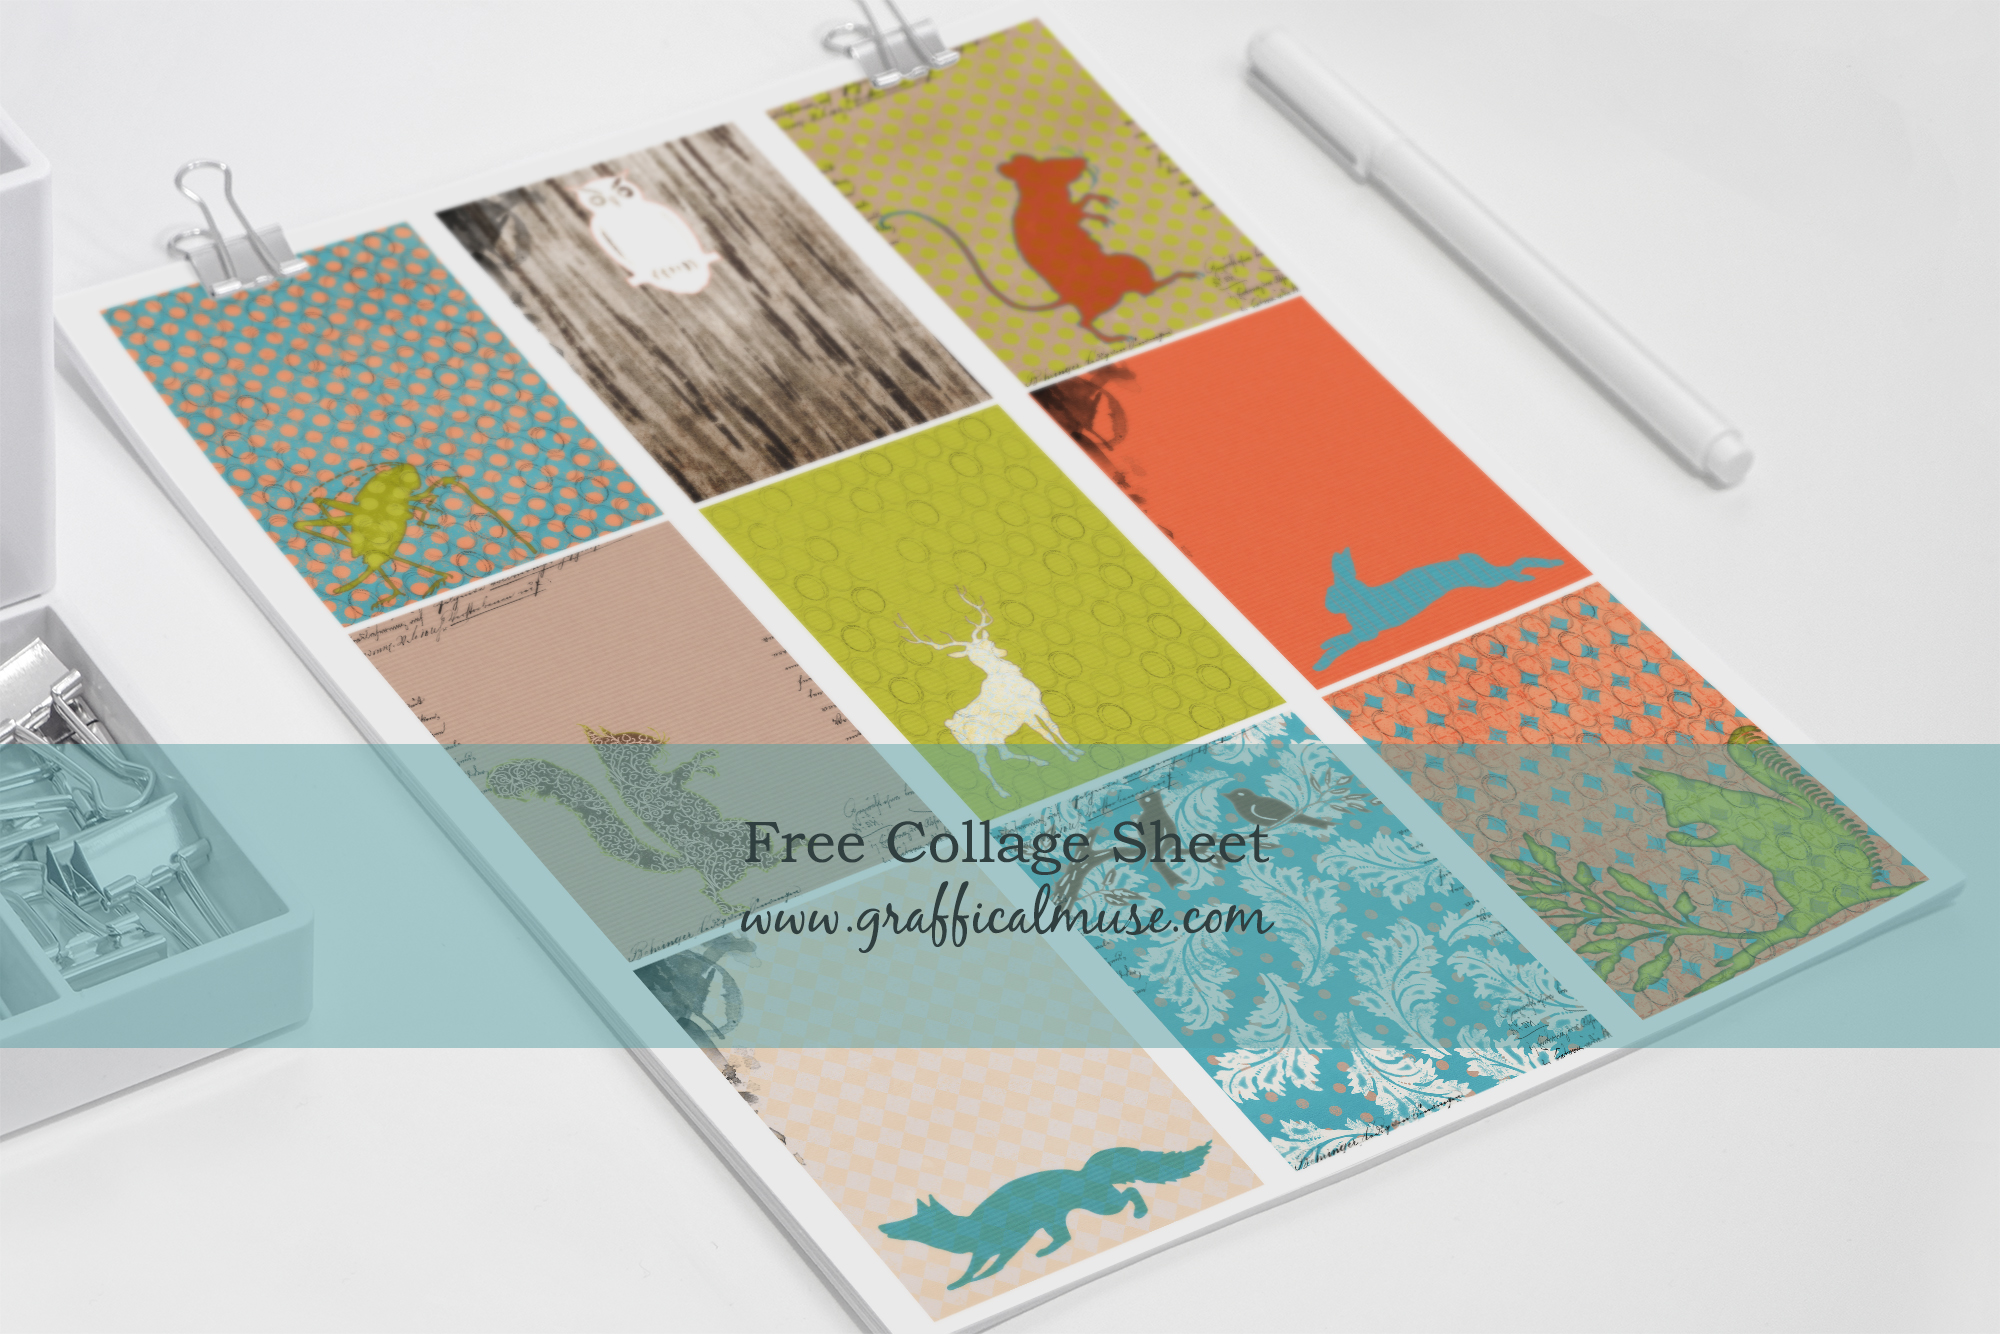 image relating to Free Printable Collage Sheets referred to as Collage Sheets Archives - The Graffical Muse